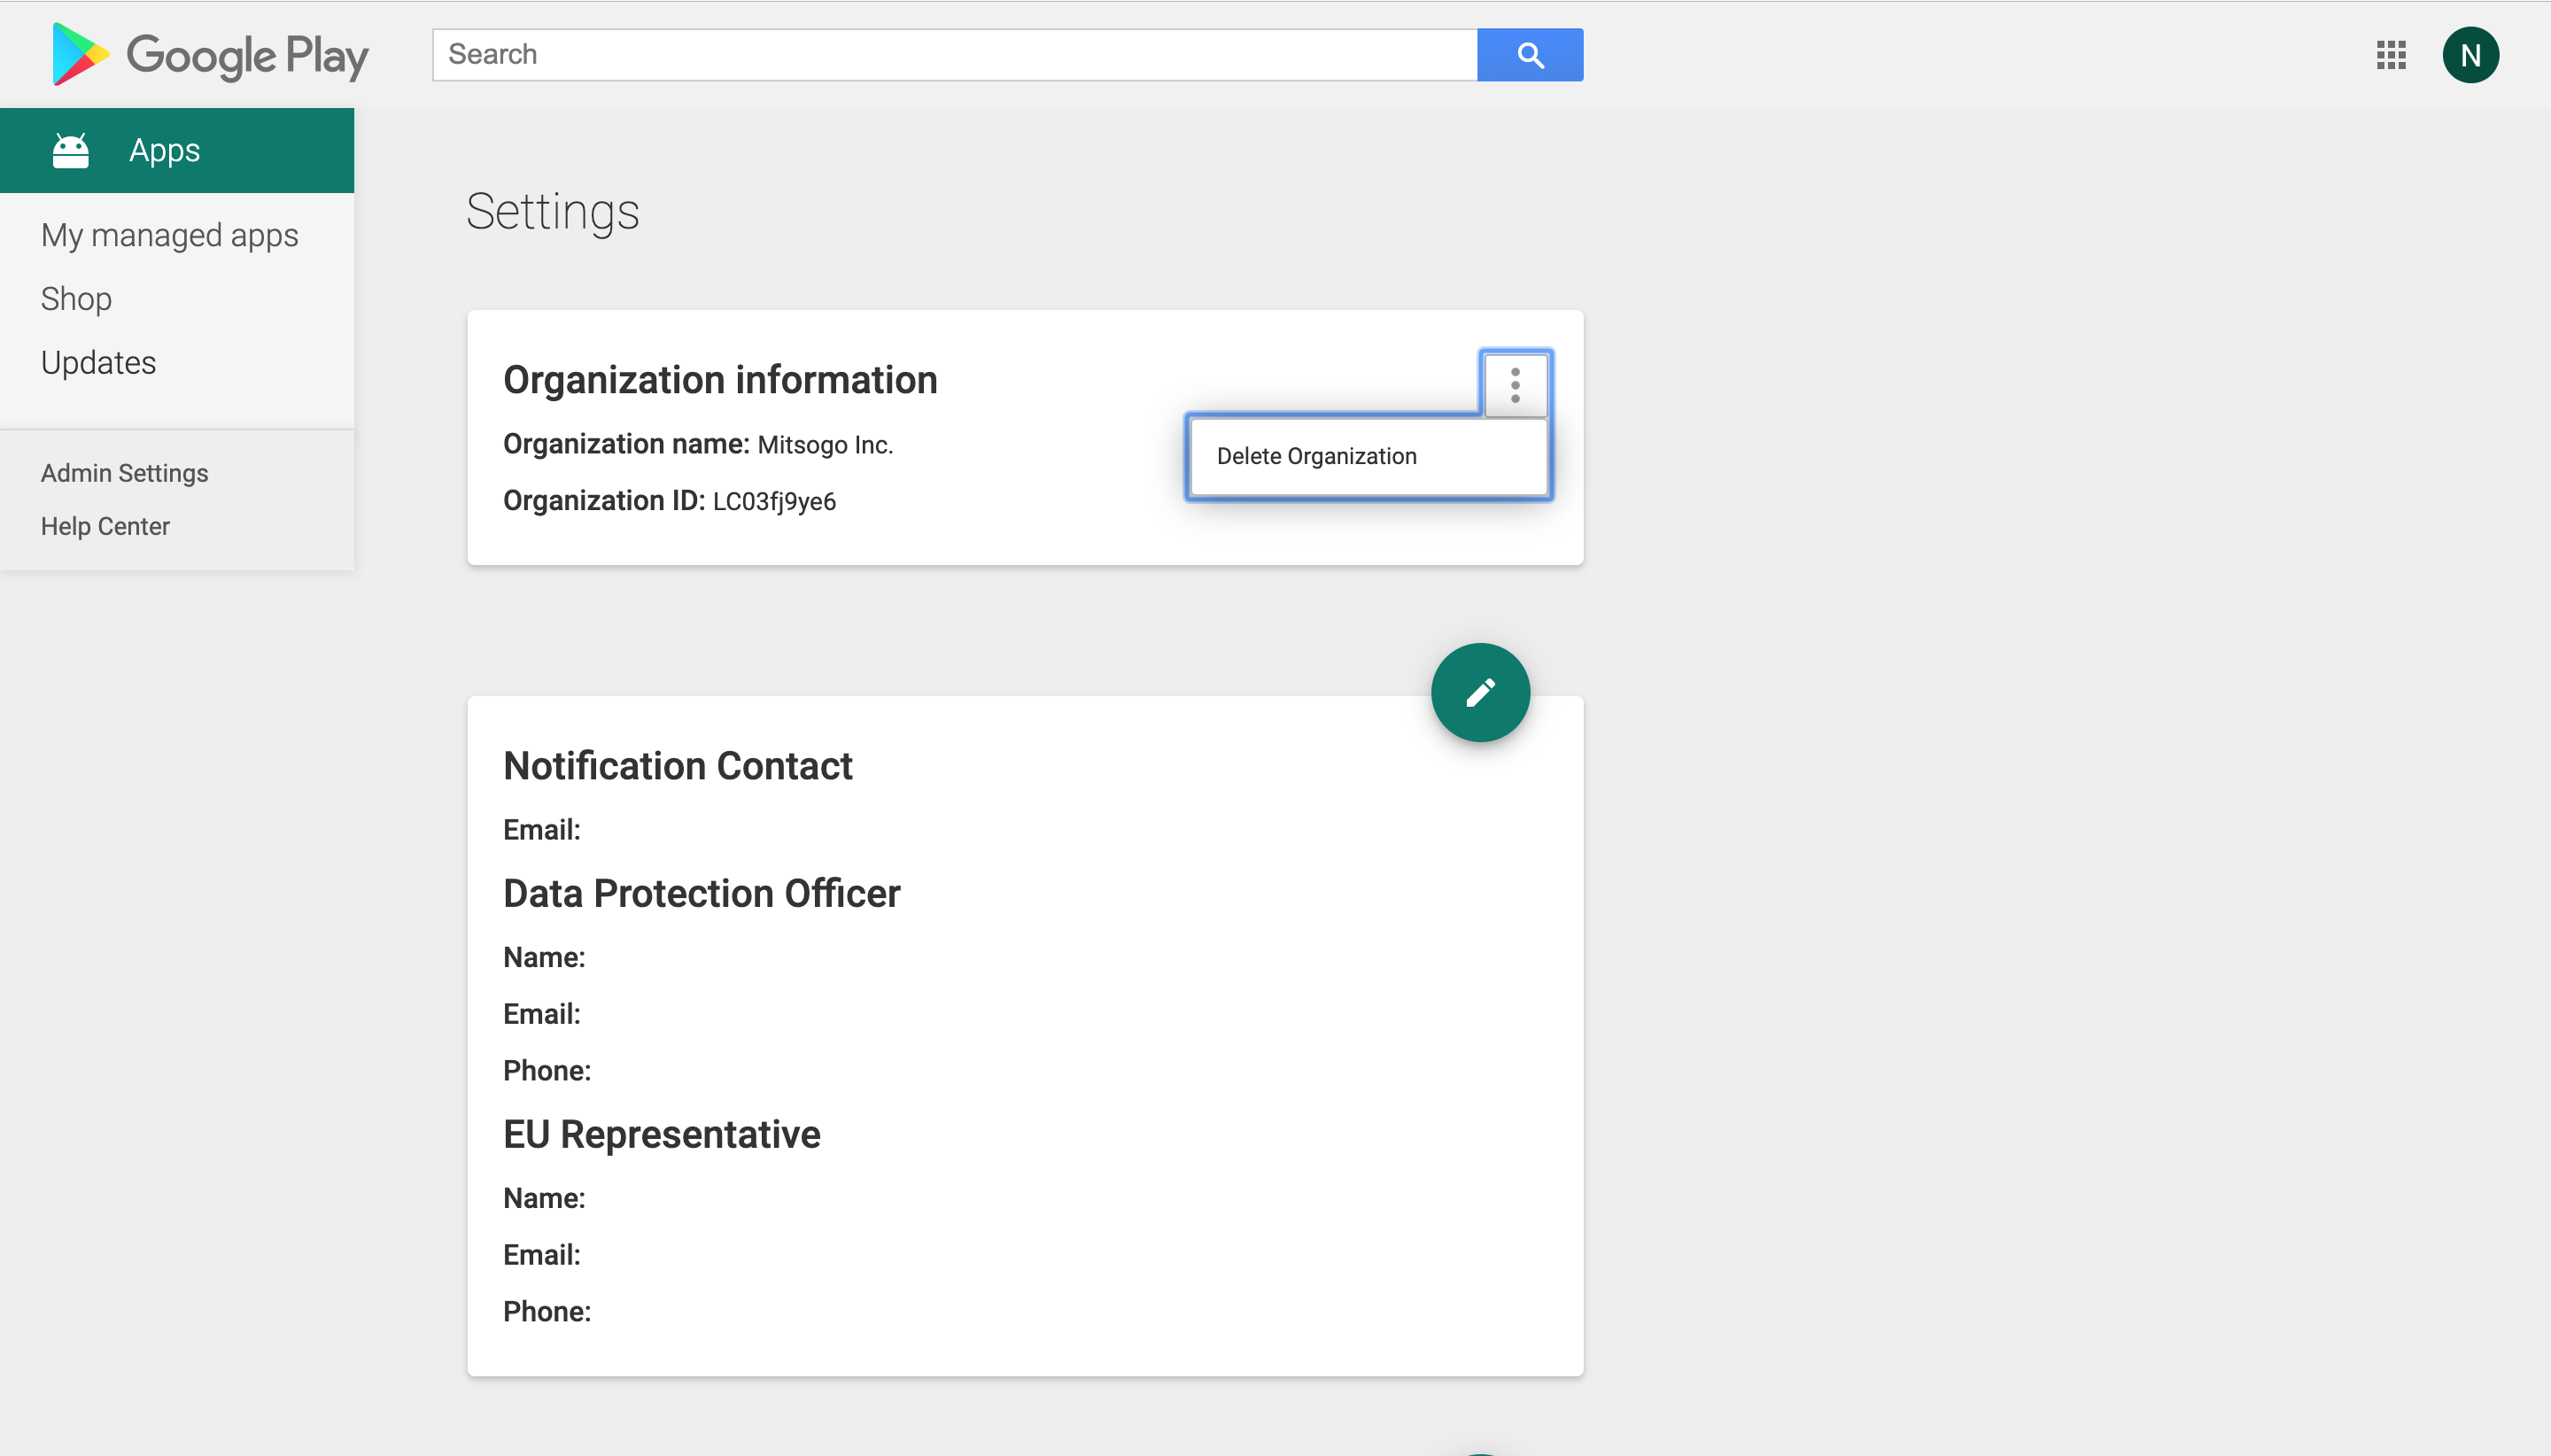 Delete Organization from Google Play Console